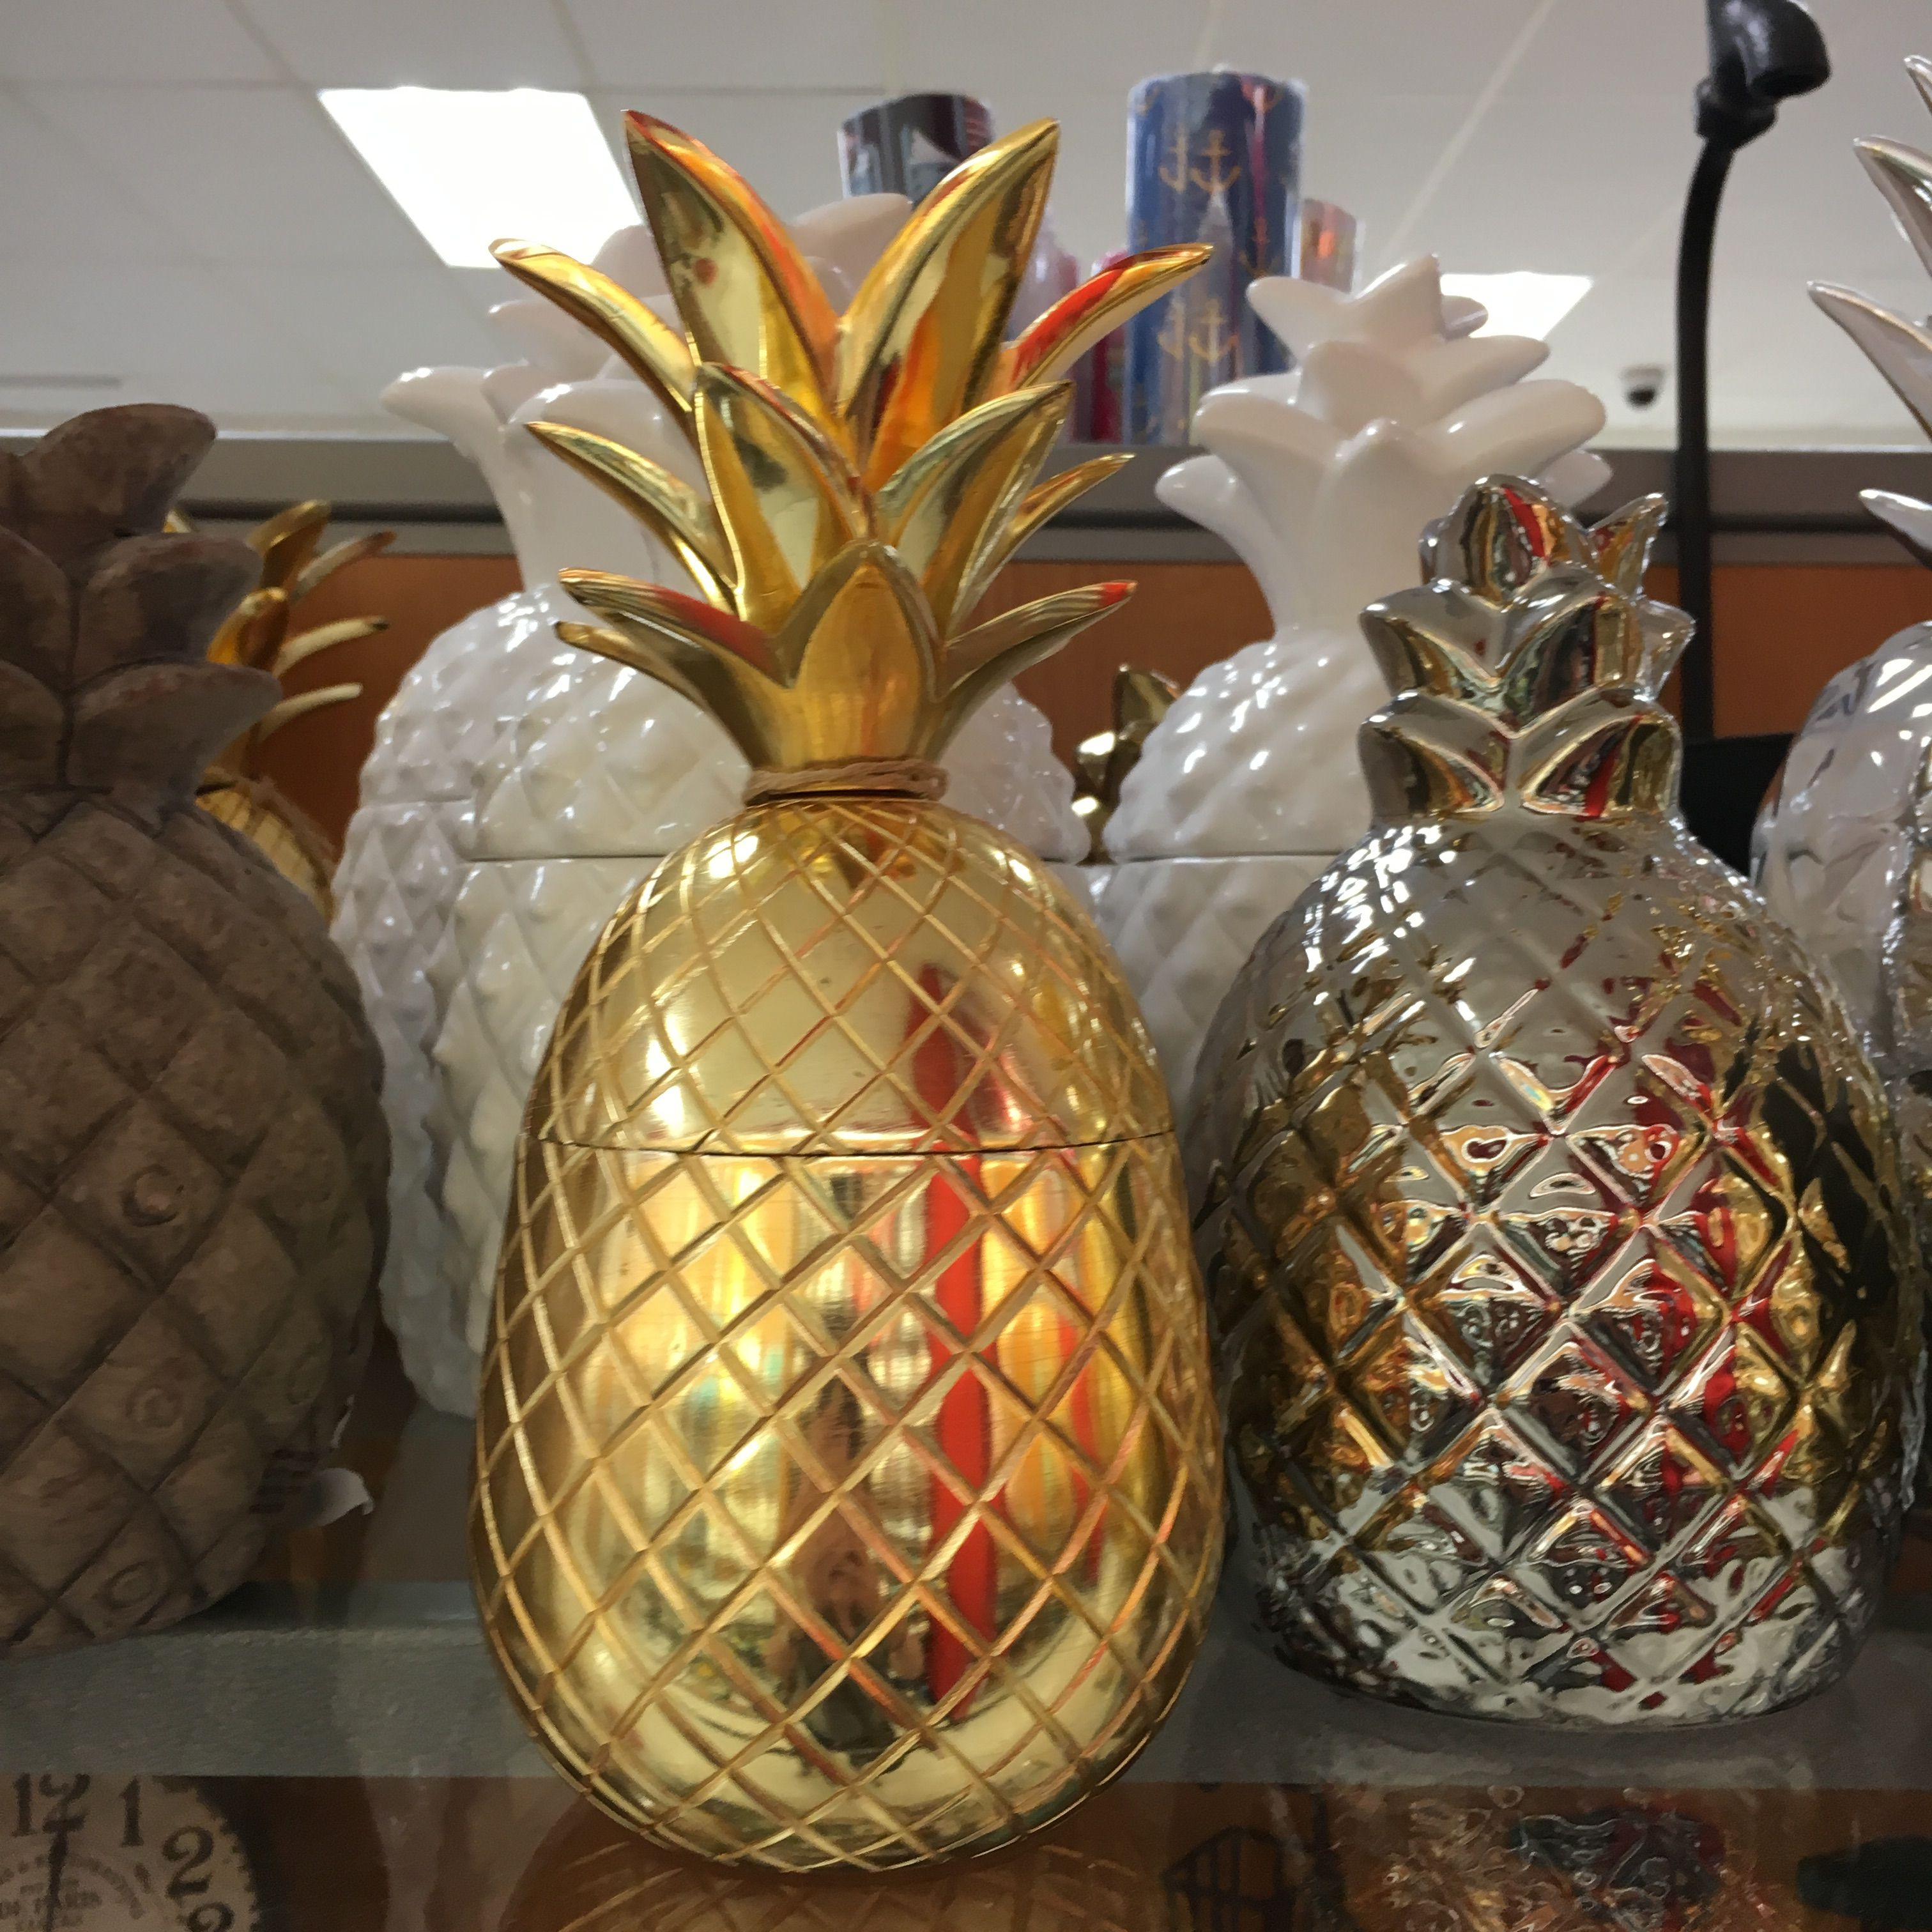 Pineapples at TJ Maxx.   Pineapple Obsession   Pinterest